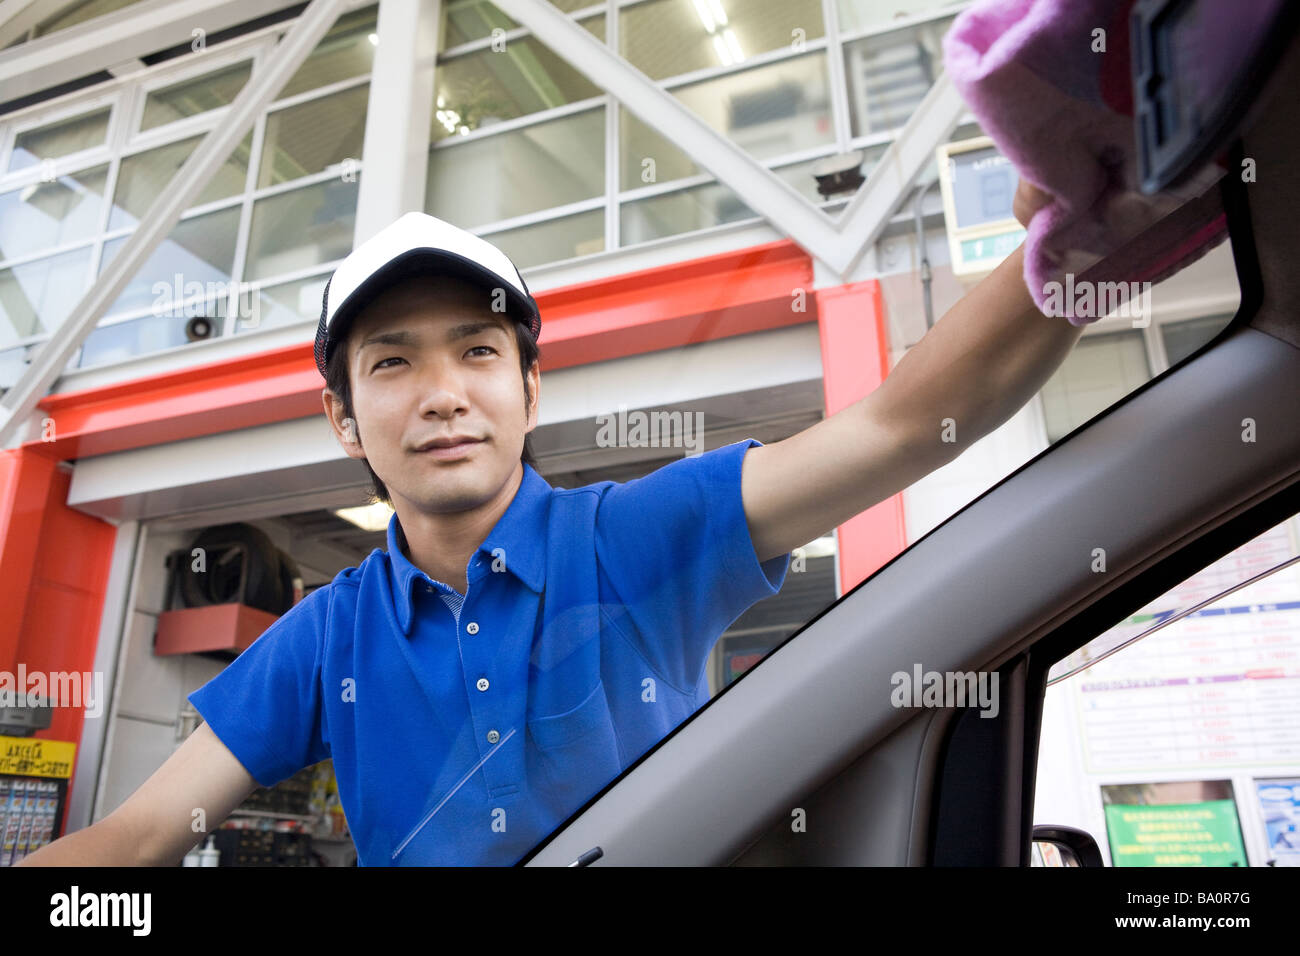 gas station clerk wiping car window stock image